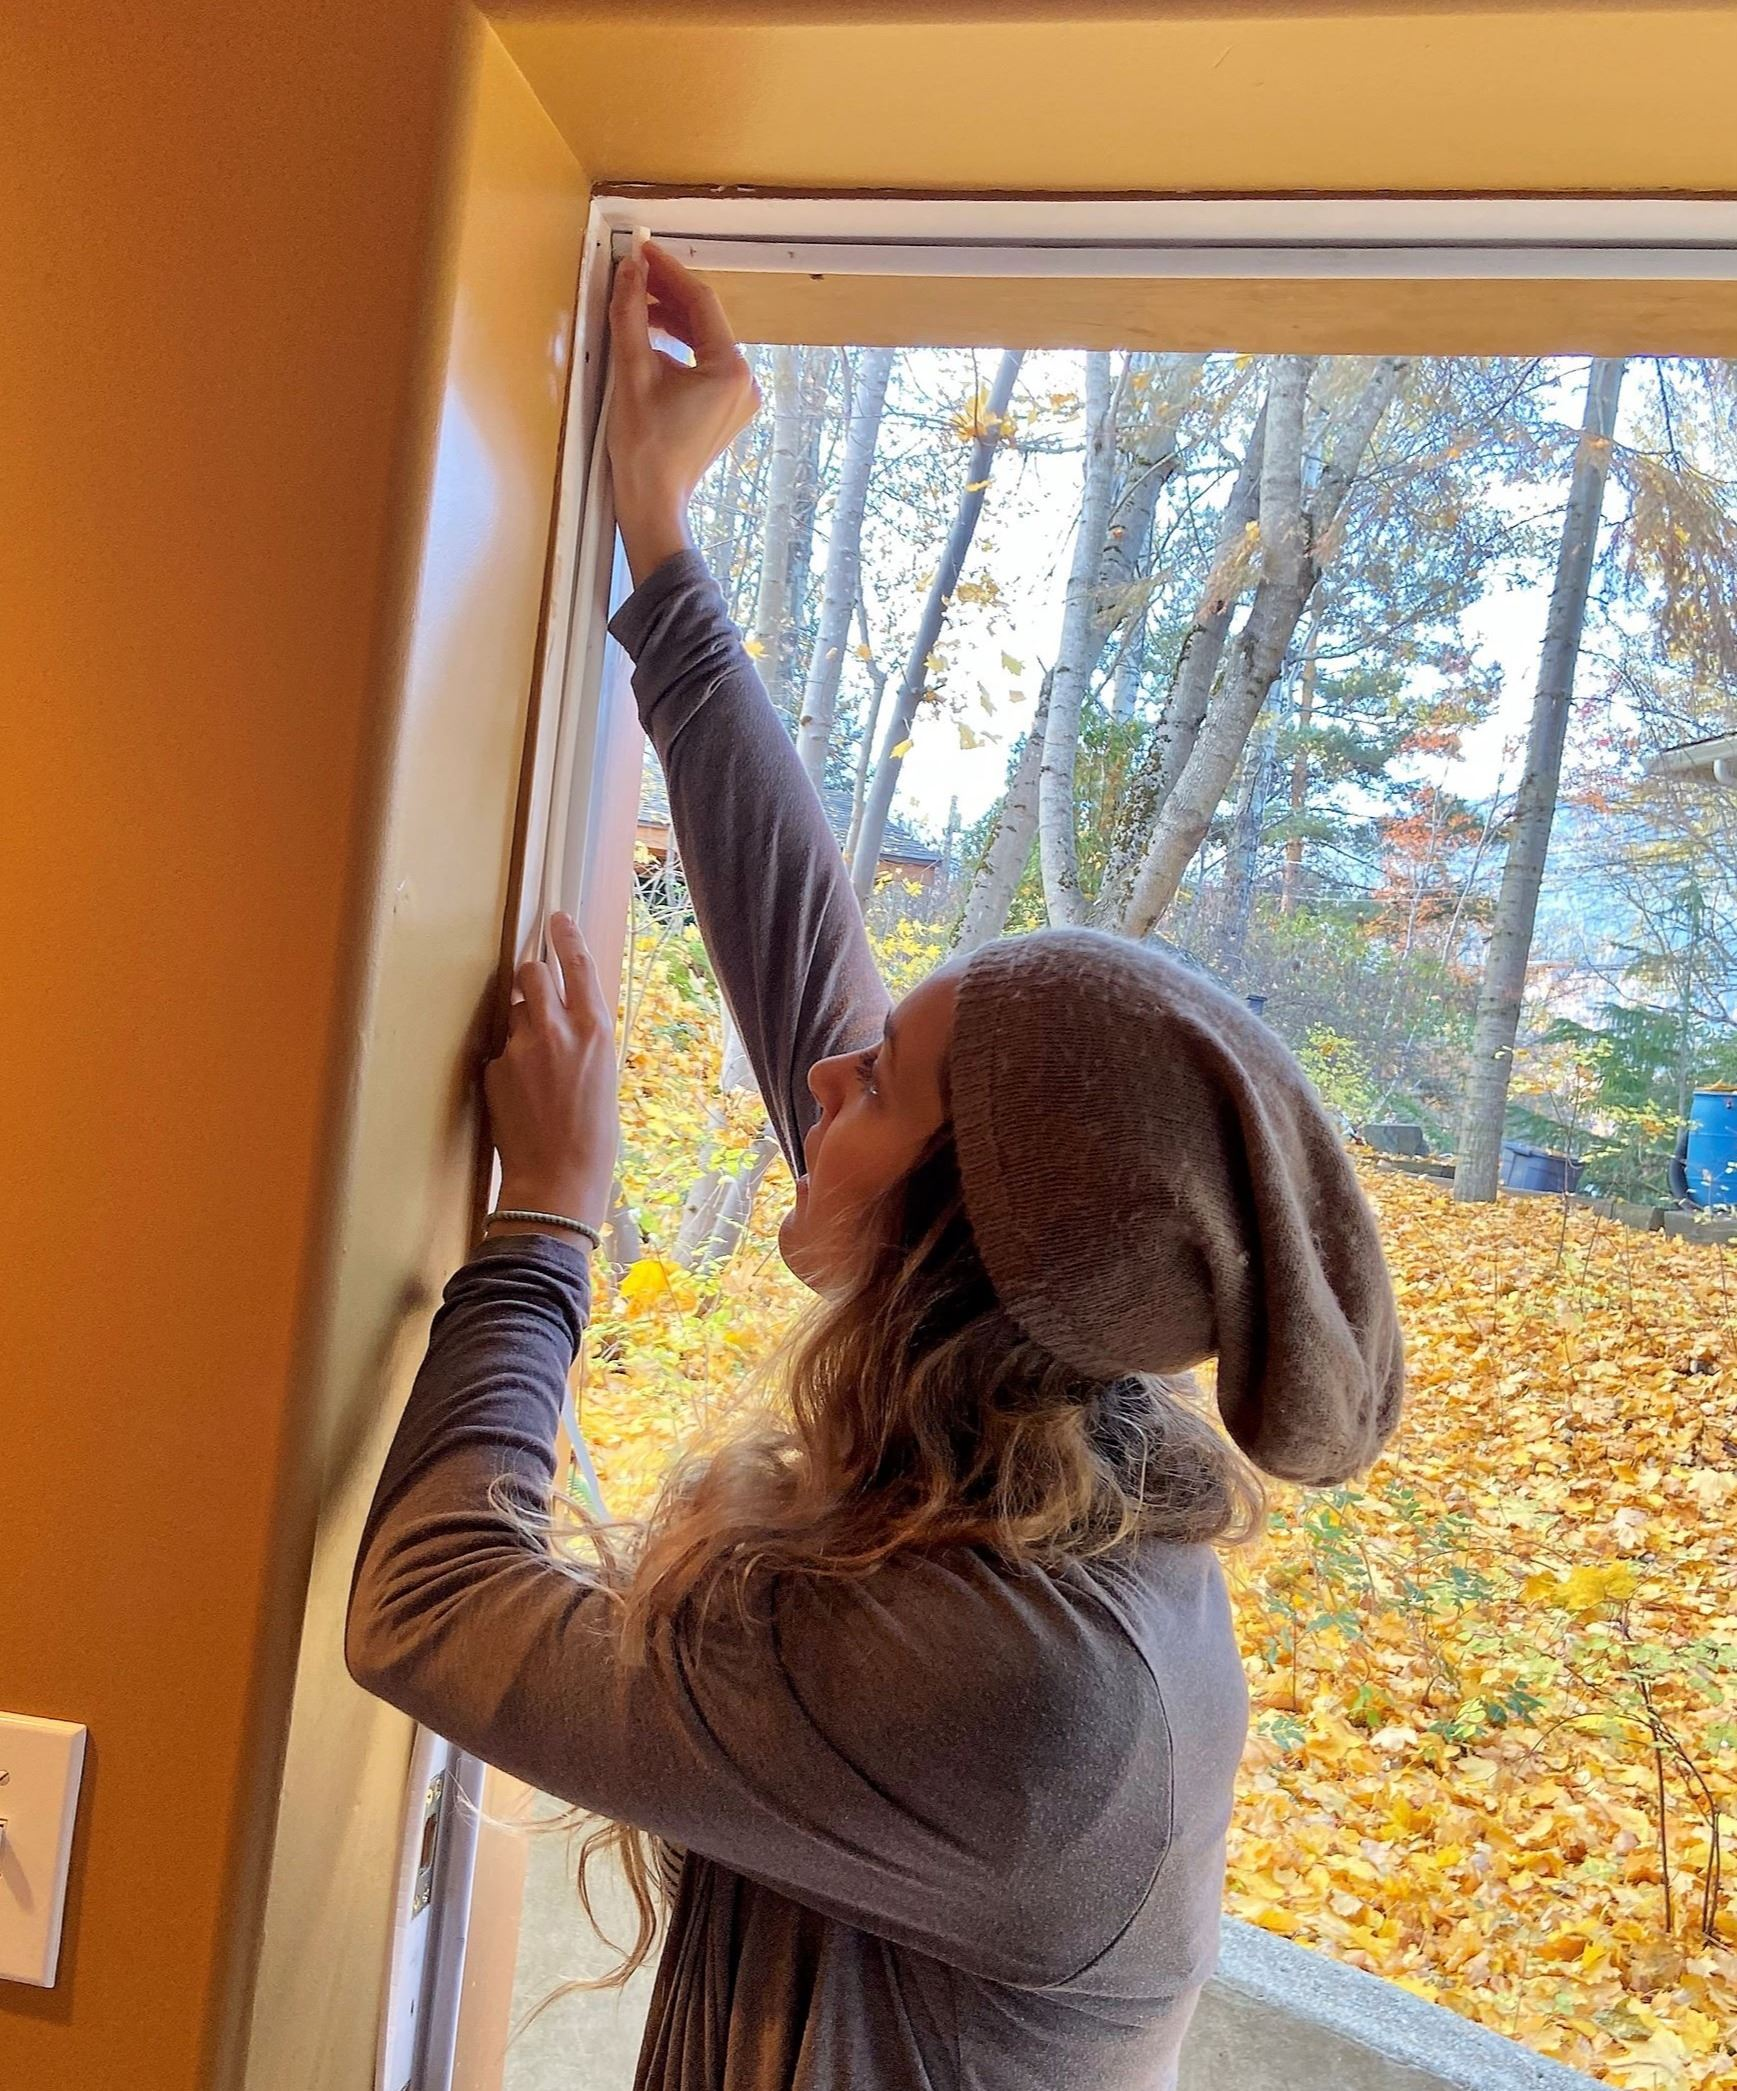 Seniors Program weatherstripping install